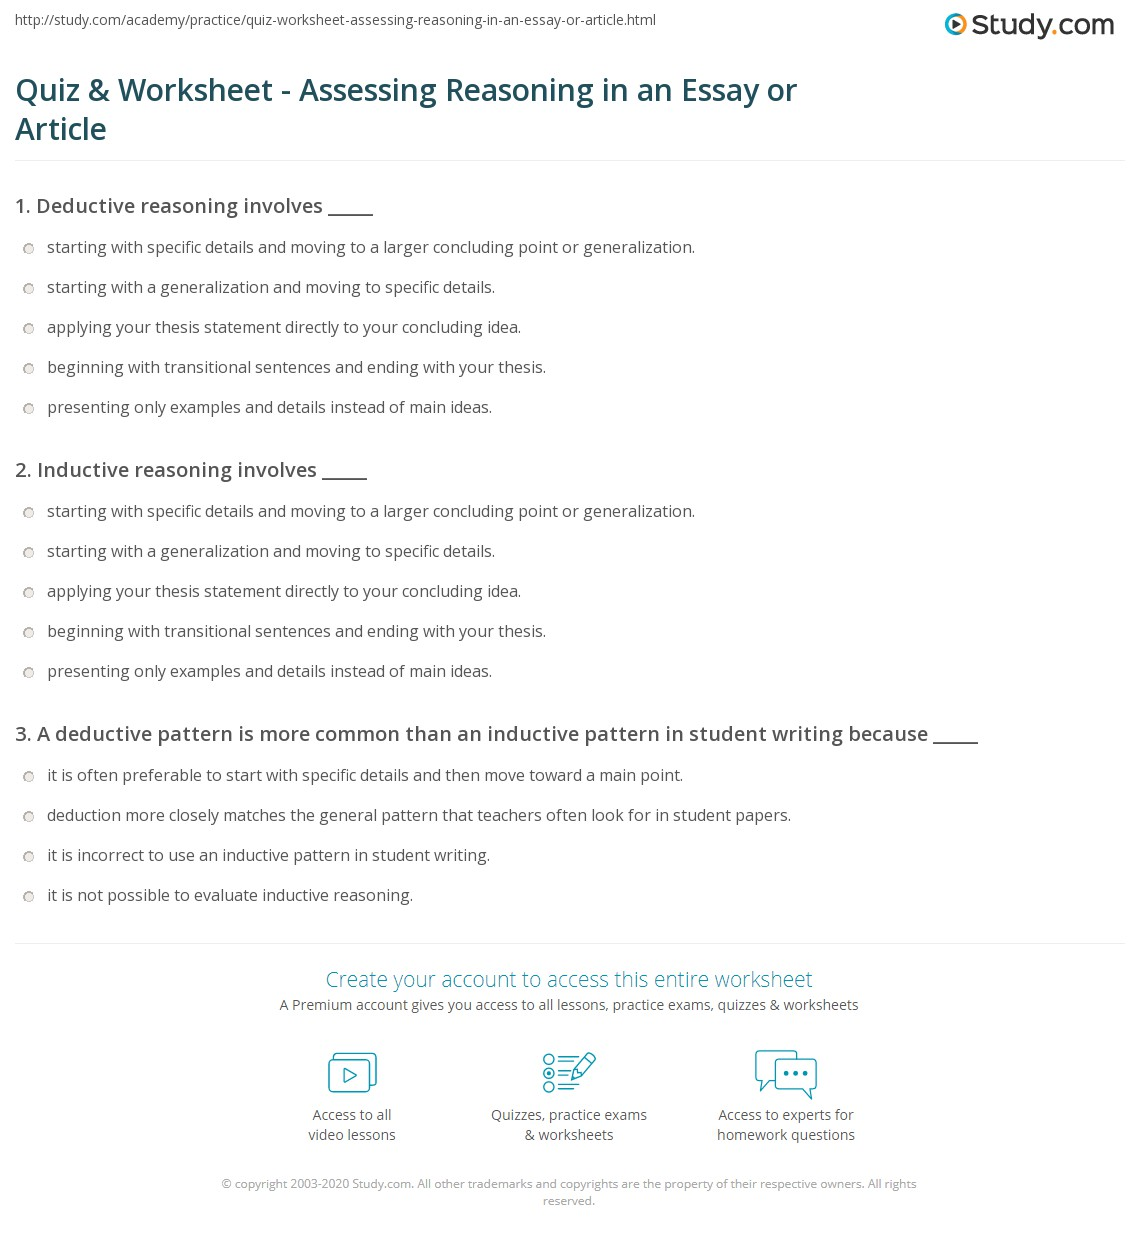 Worksheets Inductive Reasoning Worksheets quiz worksheet assessing reasoning in an essay or article inductive involves